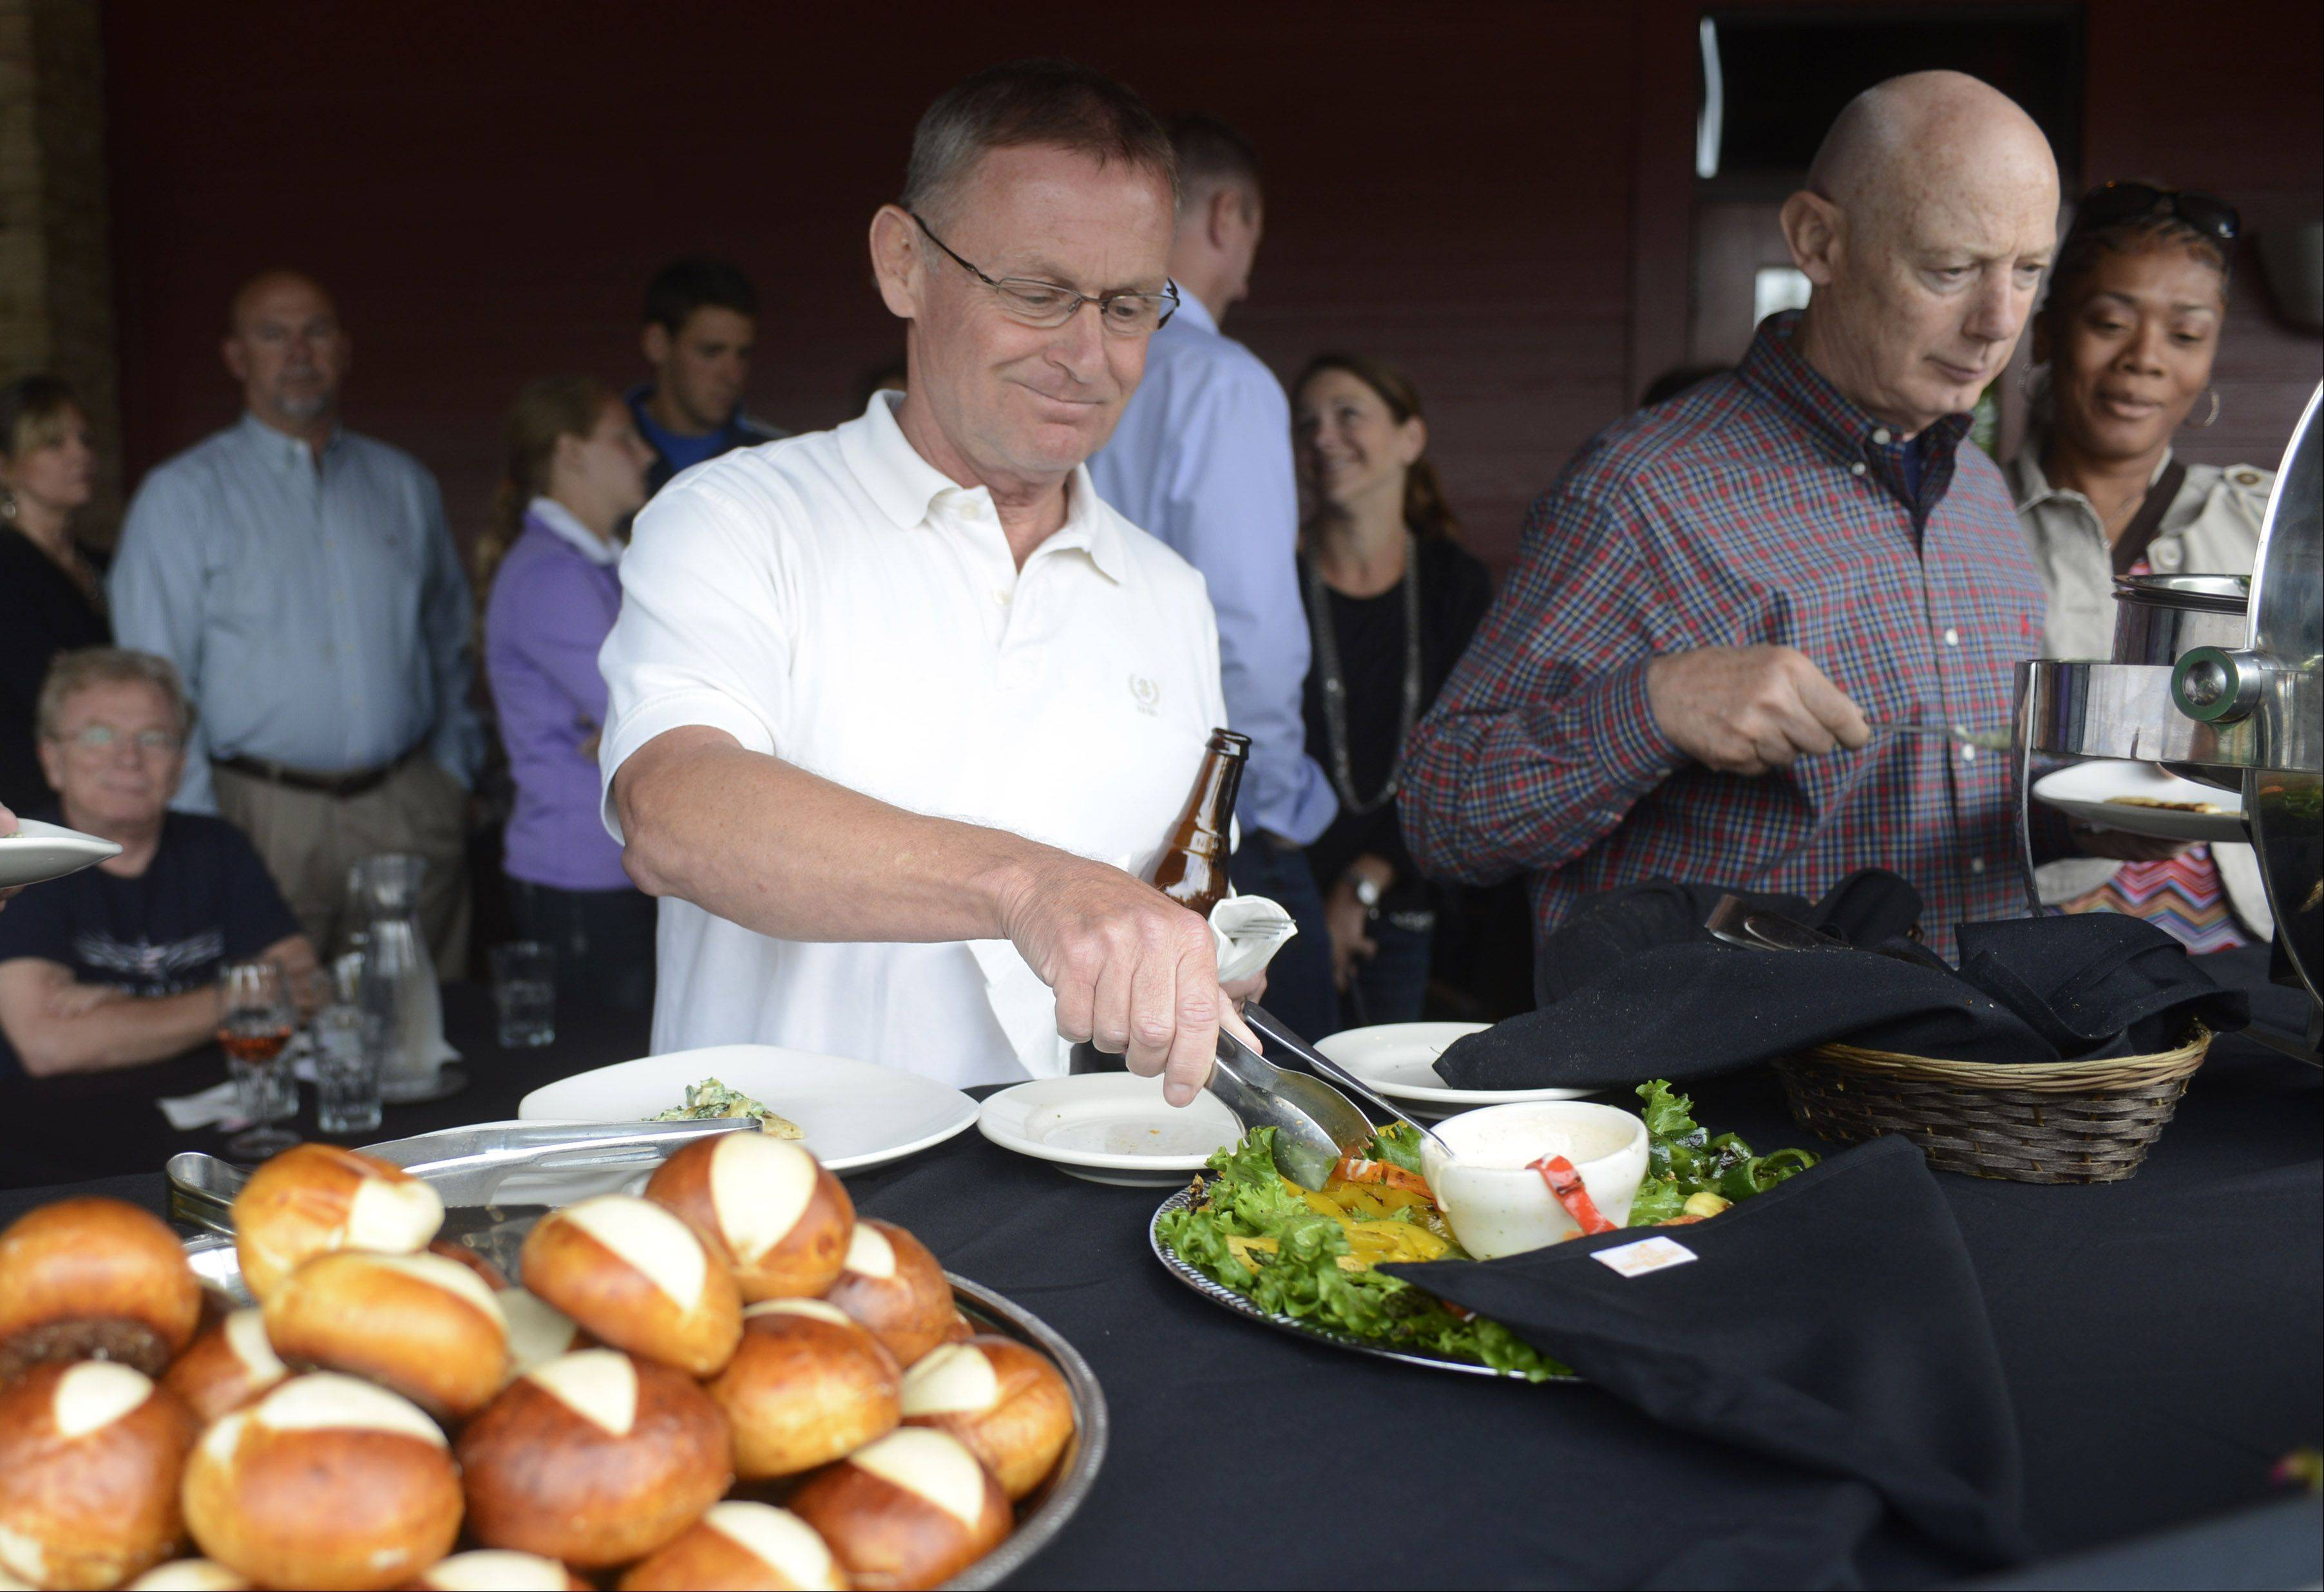 Rick Kronberg of Palatine, left, and Don Lukeon of Arlington Heights make their selections in the buffet line as Daily Herald premium subscribers are treated to �Grilling University,� a two-hour tutorial accompanied by food and drinks at Weber Grill Restaurant in Schaumburg Tuesday.